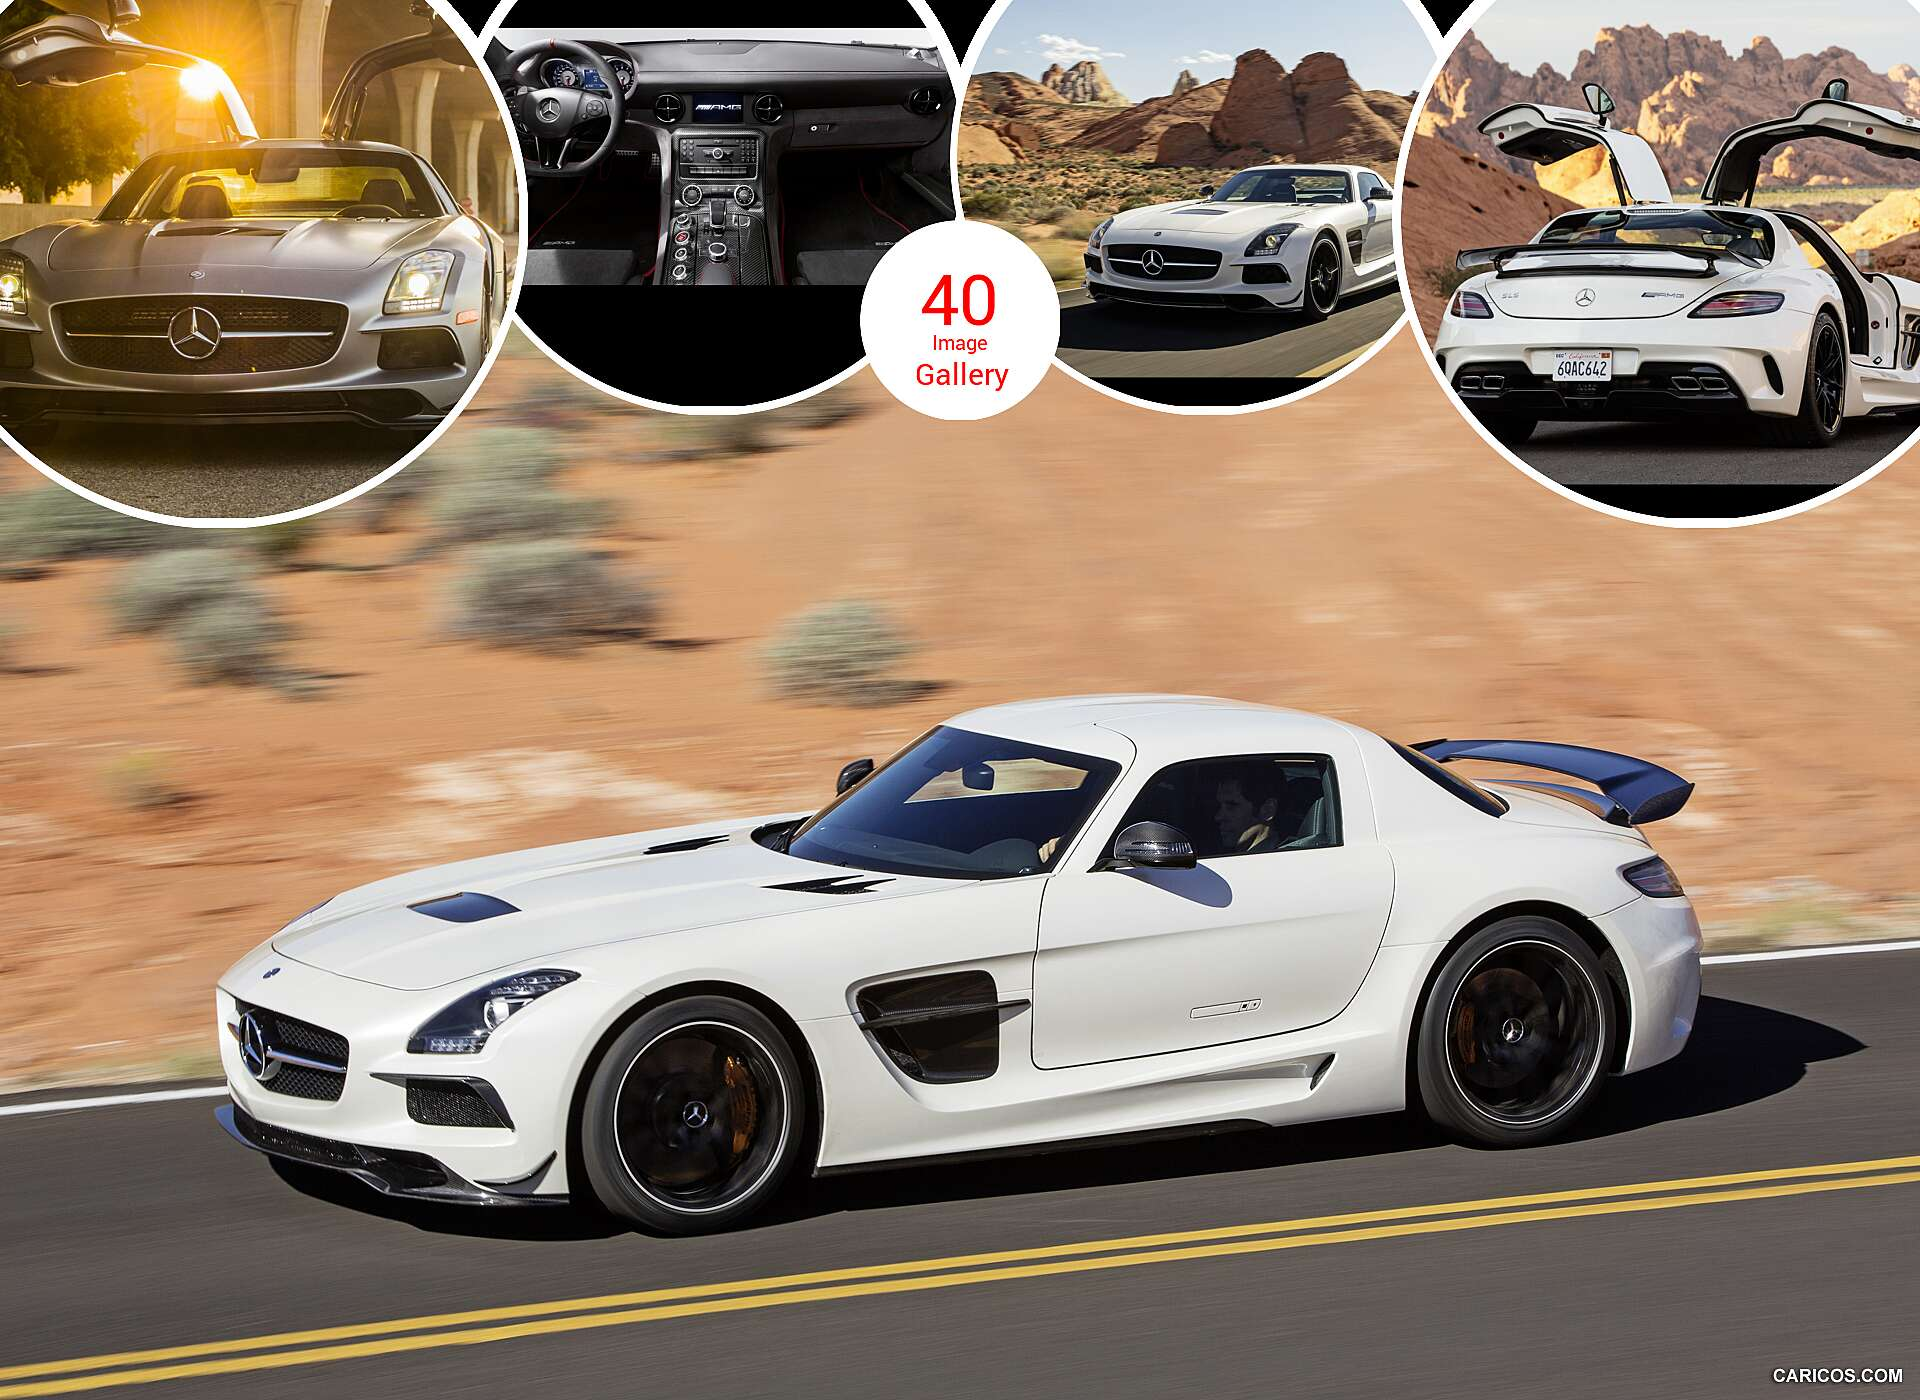 Sls Black Series >> 2014 Mercedes Benz Sls Amg Coupe Black Series Caricos Com